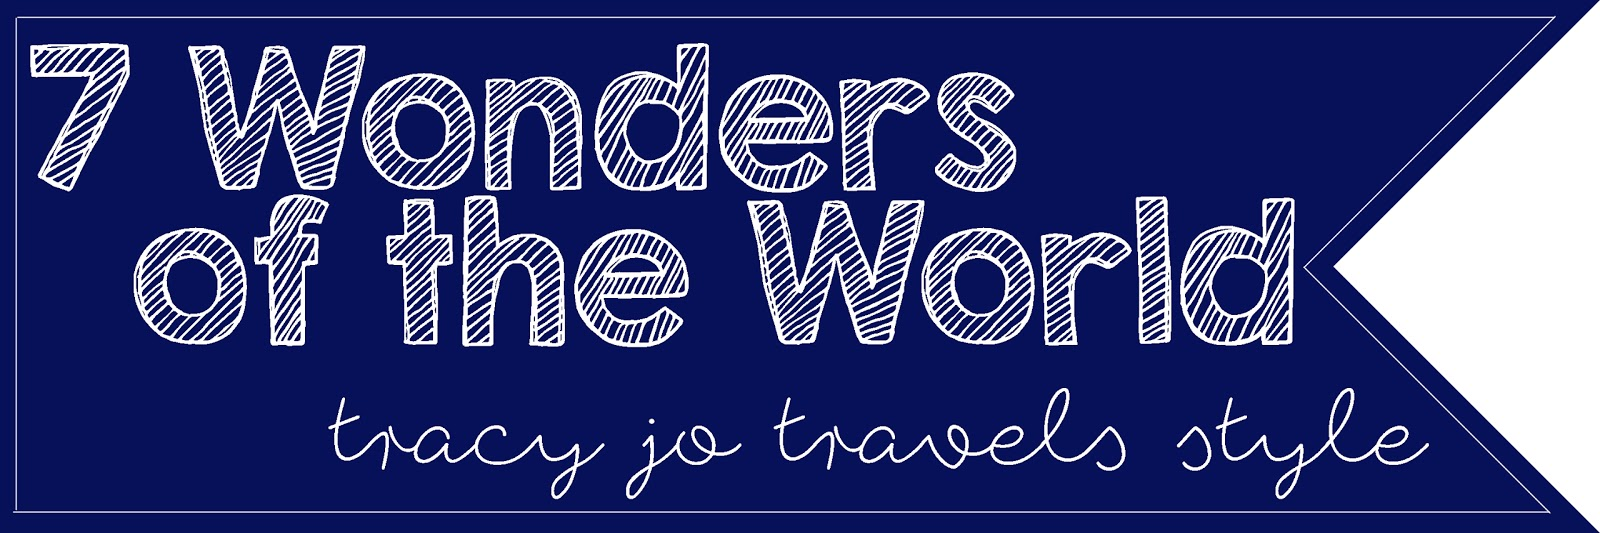 7 Wonders of the World - Tracy Jo Travels